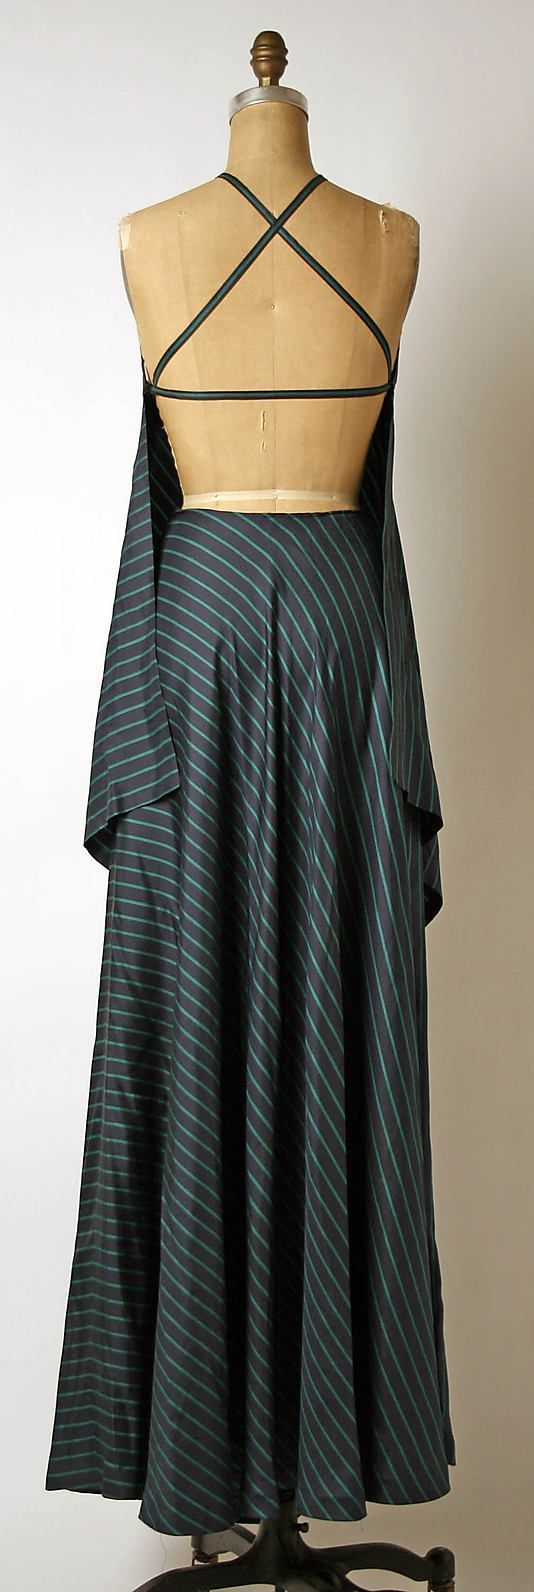 Evening ensemble - Madame Gres 1976 - Back View. This is the perfect evening dress - so simple and elegant